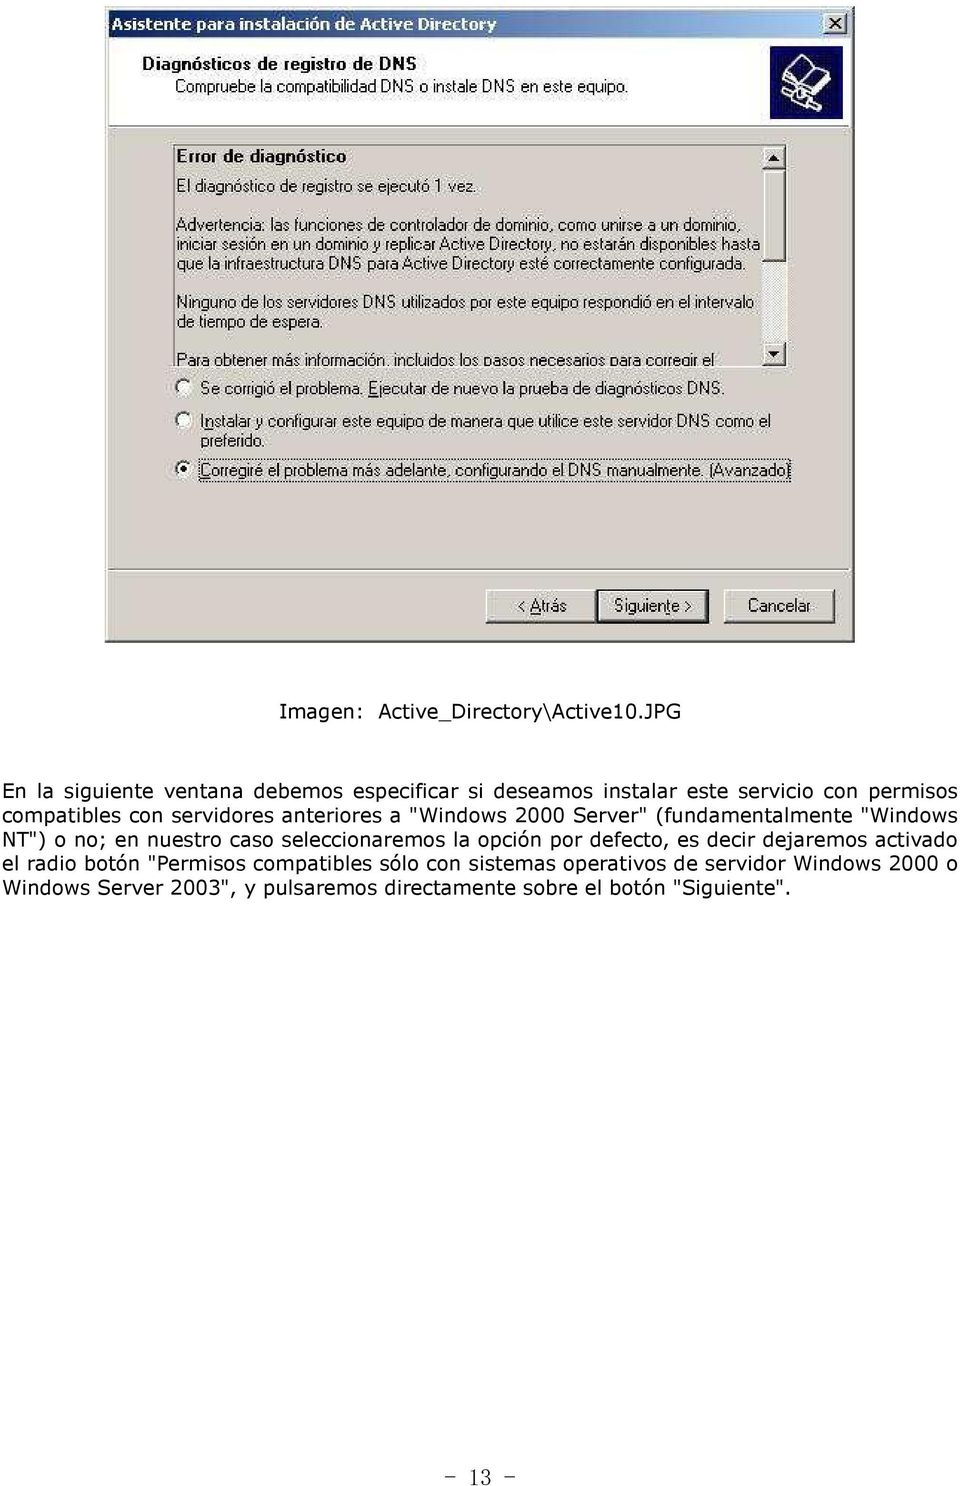 "servidores anteriores a ""Windows 2000 Server"" (fundamentalmente ""Windows NT"") o no; en nuestro caso seleccionaremos la"